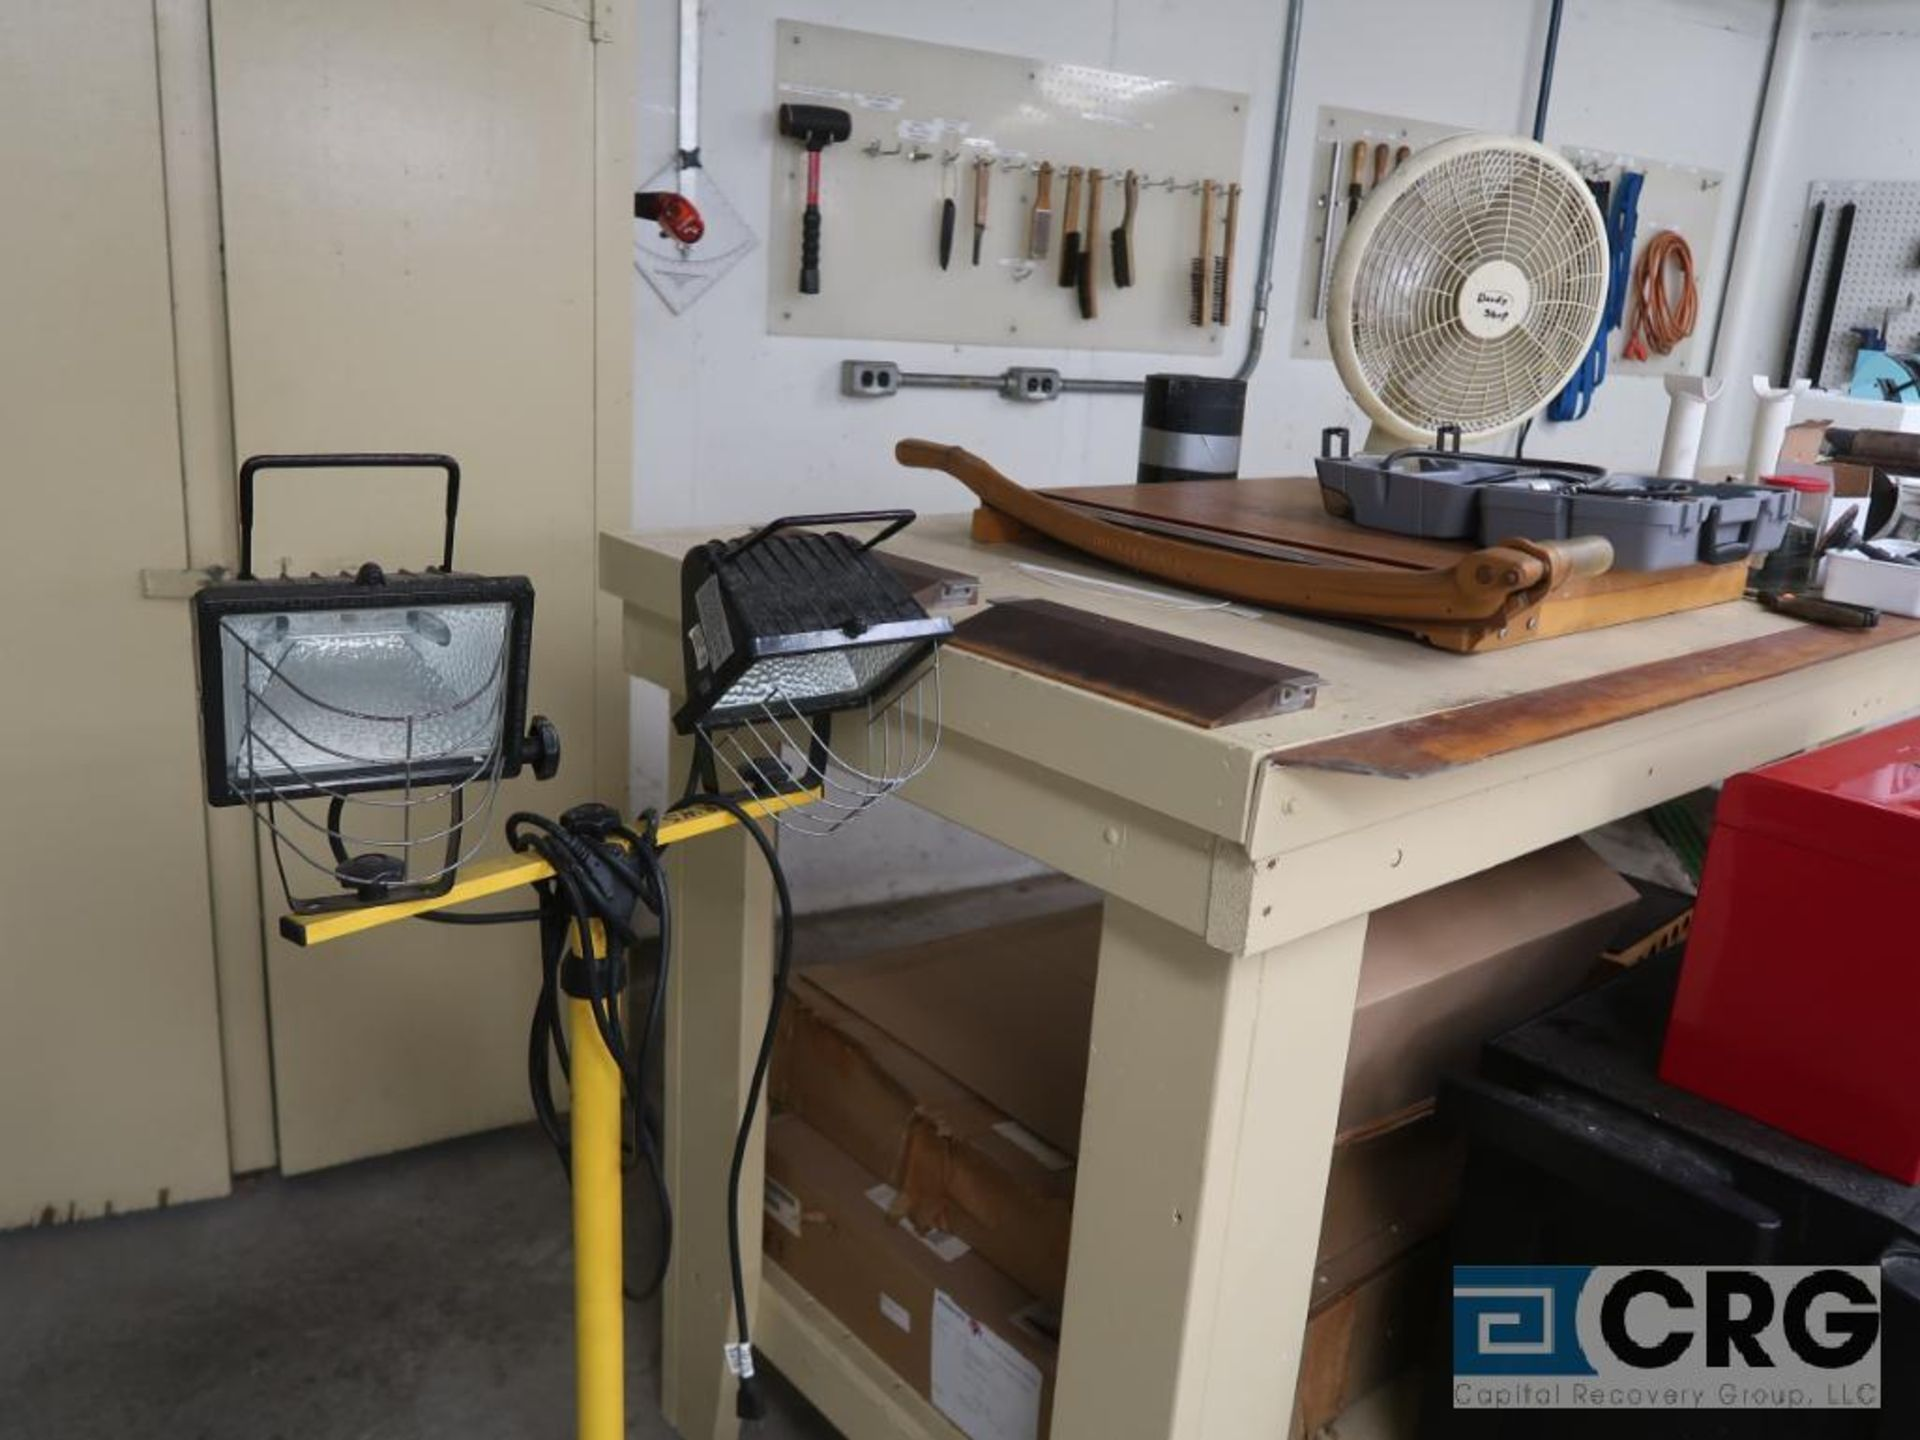 Lot including 2-door wood cabinet with contents including ass't hand tools, on back & side wall, all - Image 6 of 6